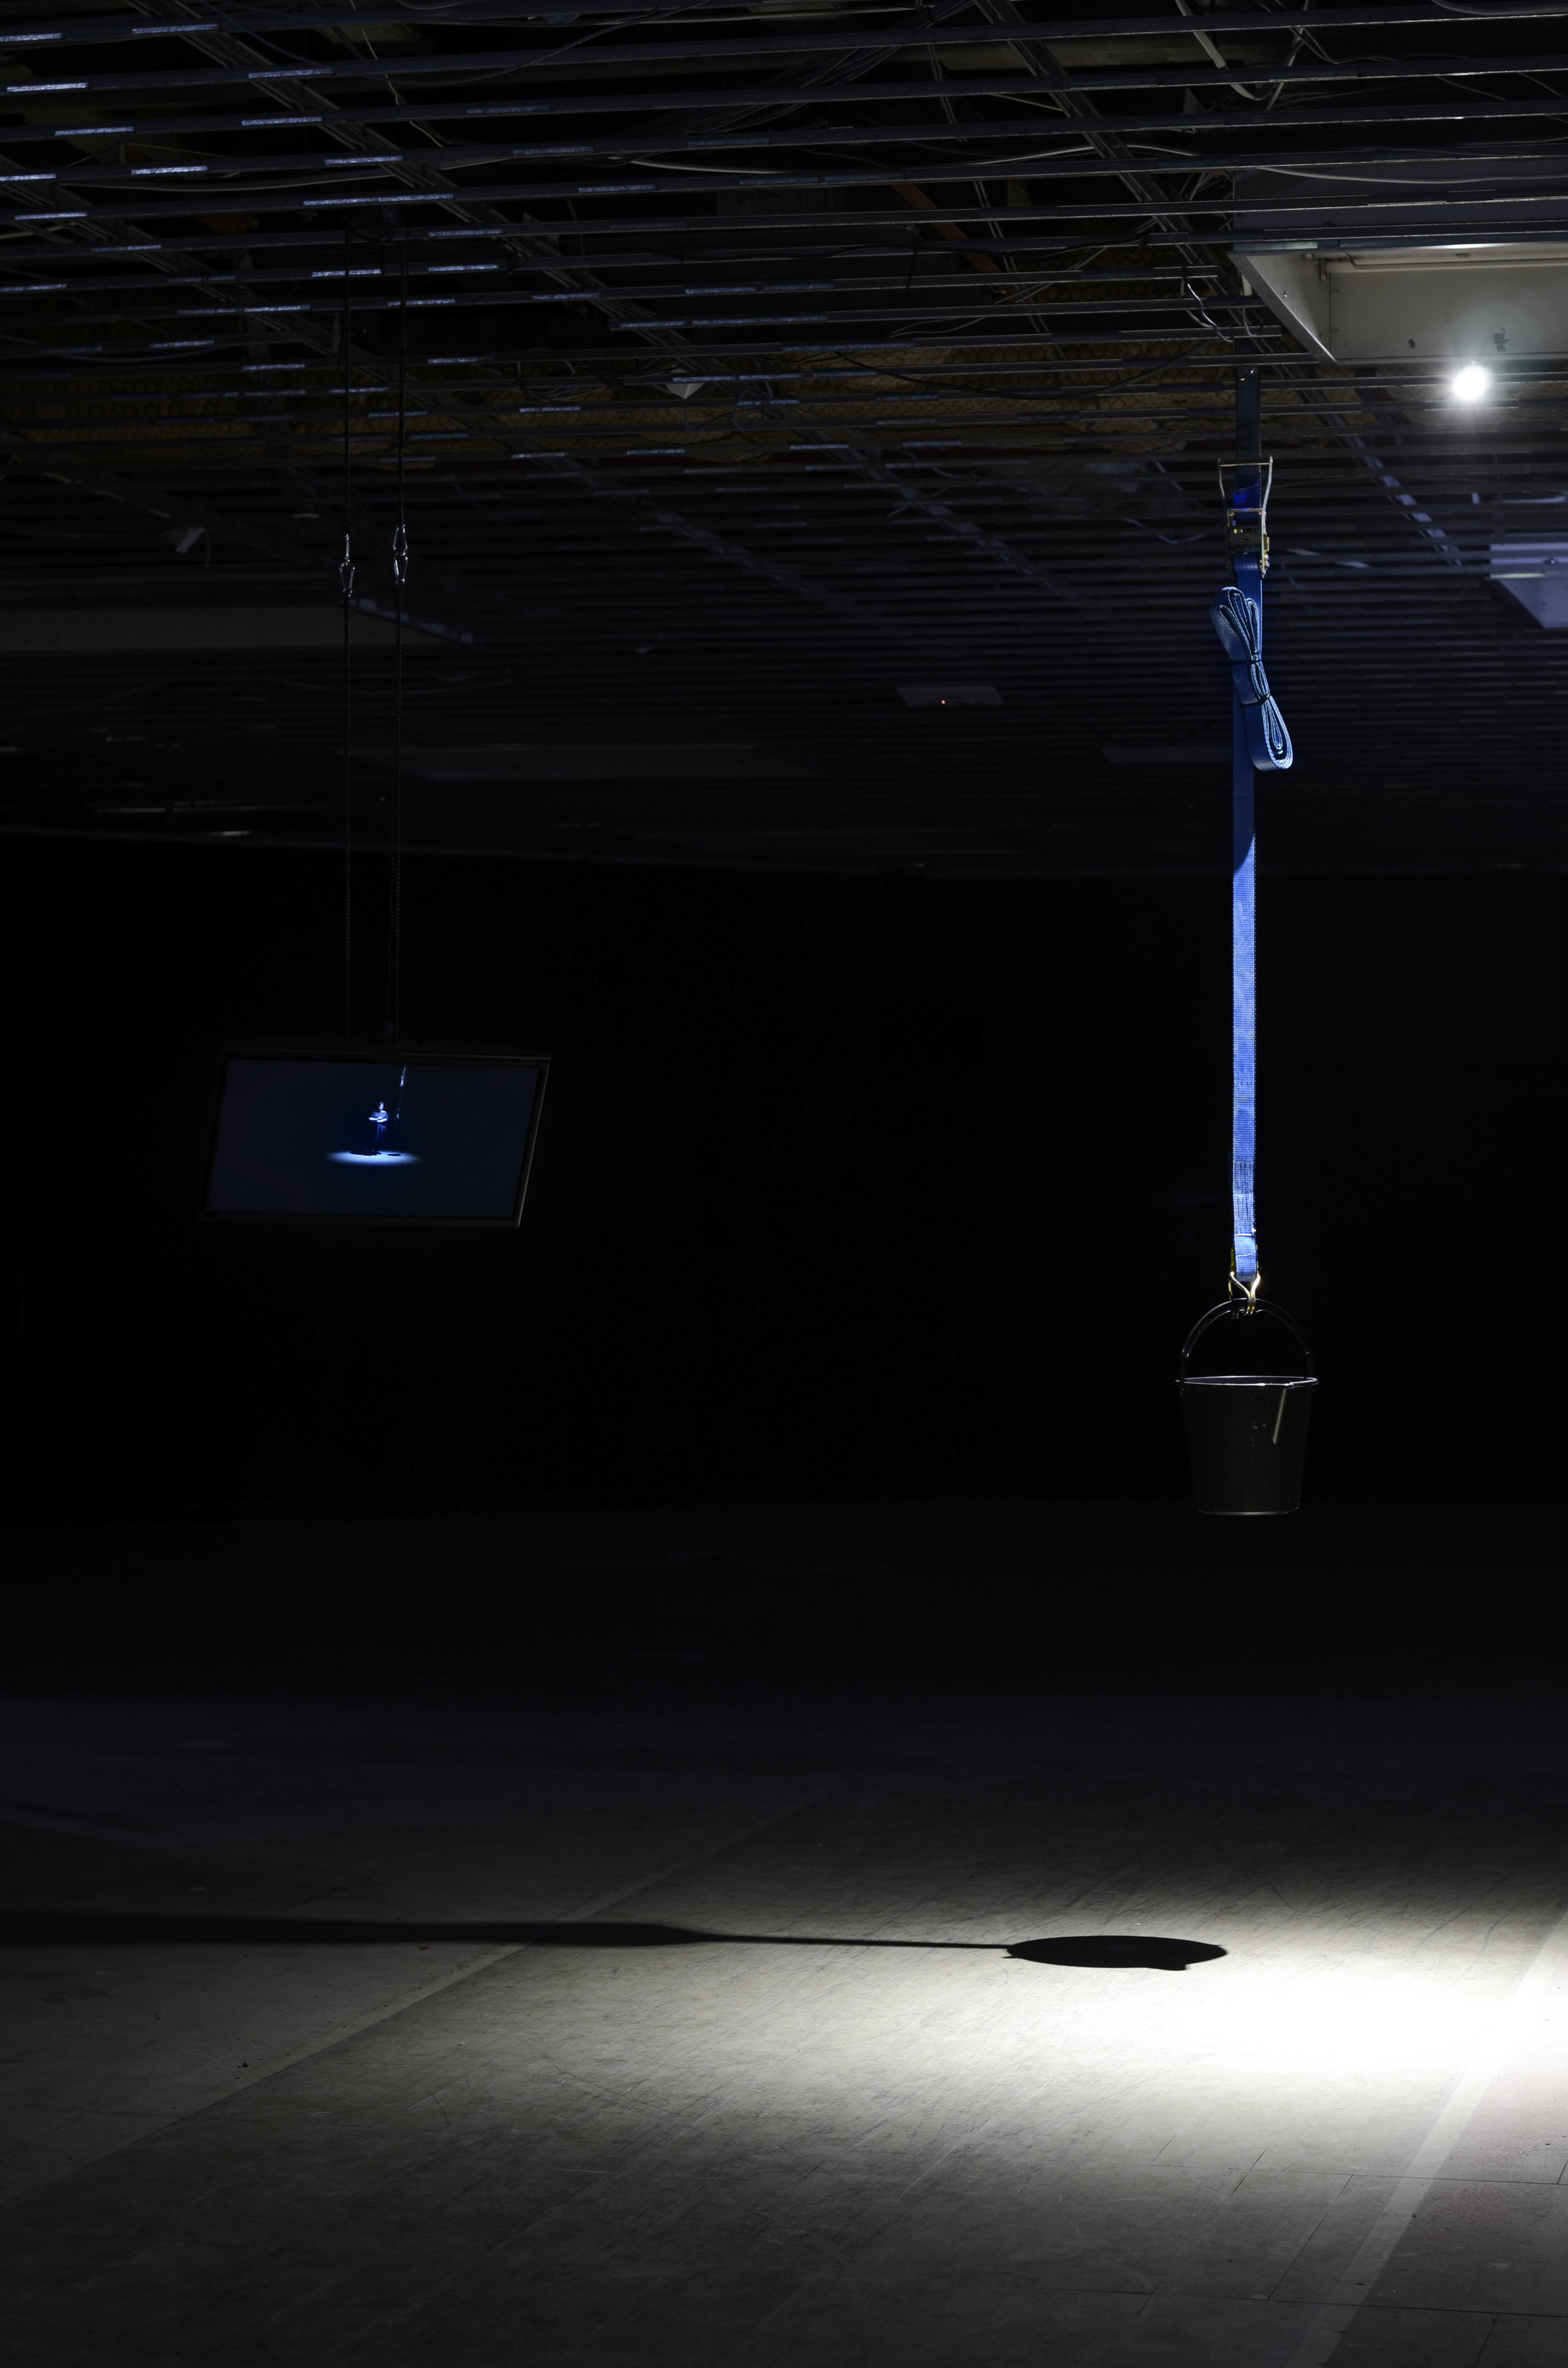 Anna McMahon,  You were always on my mind,  2016, installation view of performance set and documentation, 2 September, 2016 at Success Gallery, Fremantle, 08:45. Image courtesy of Success. Photography: Dan McCabe